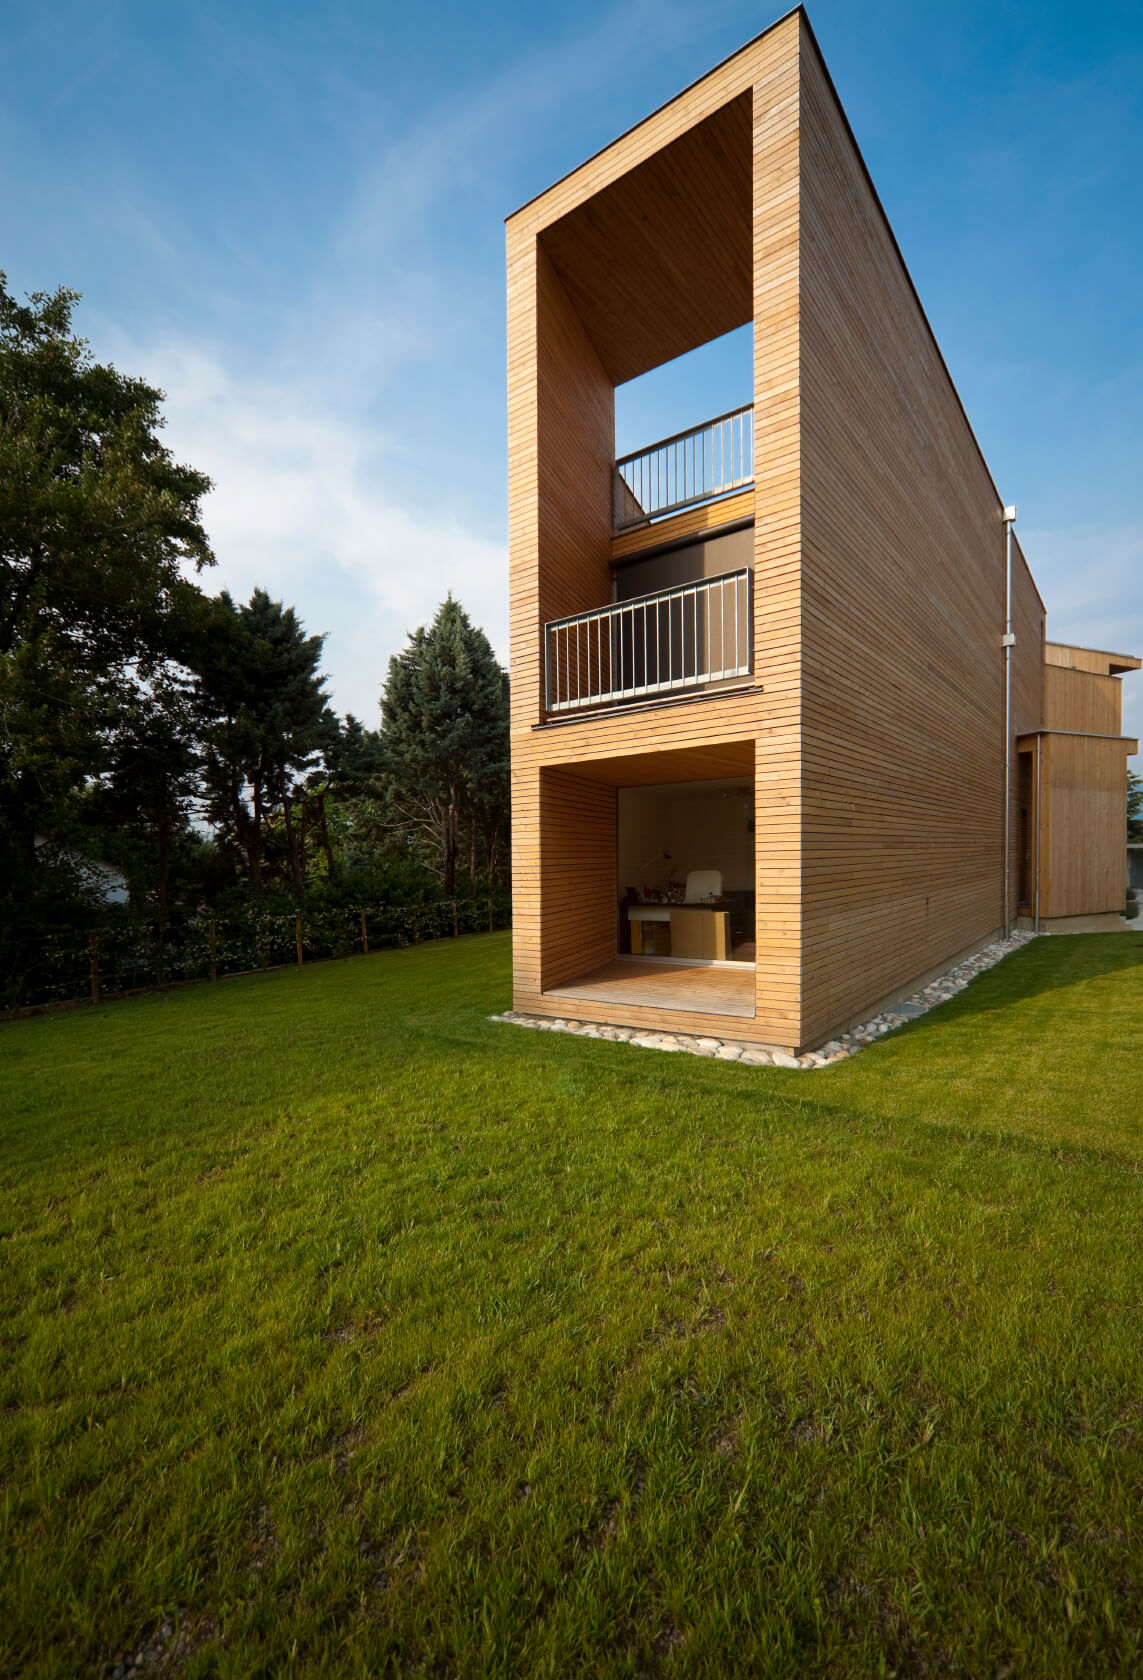 Thin wood boards can also be used as siding. Often installed in a tongue-in-groove style the boards can be placed horizontally or vertically but must have good waterproofing underneath them.